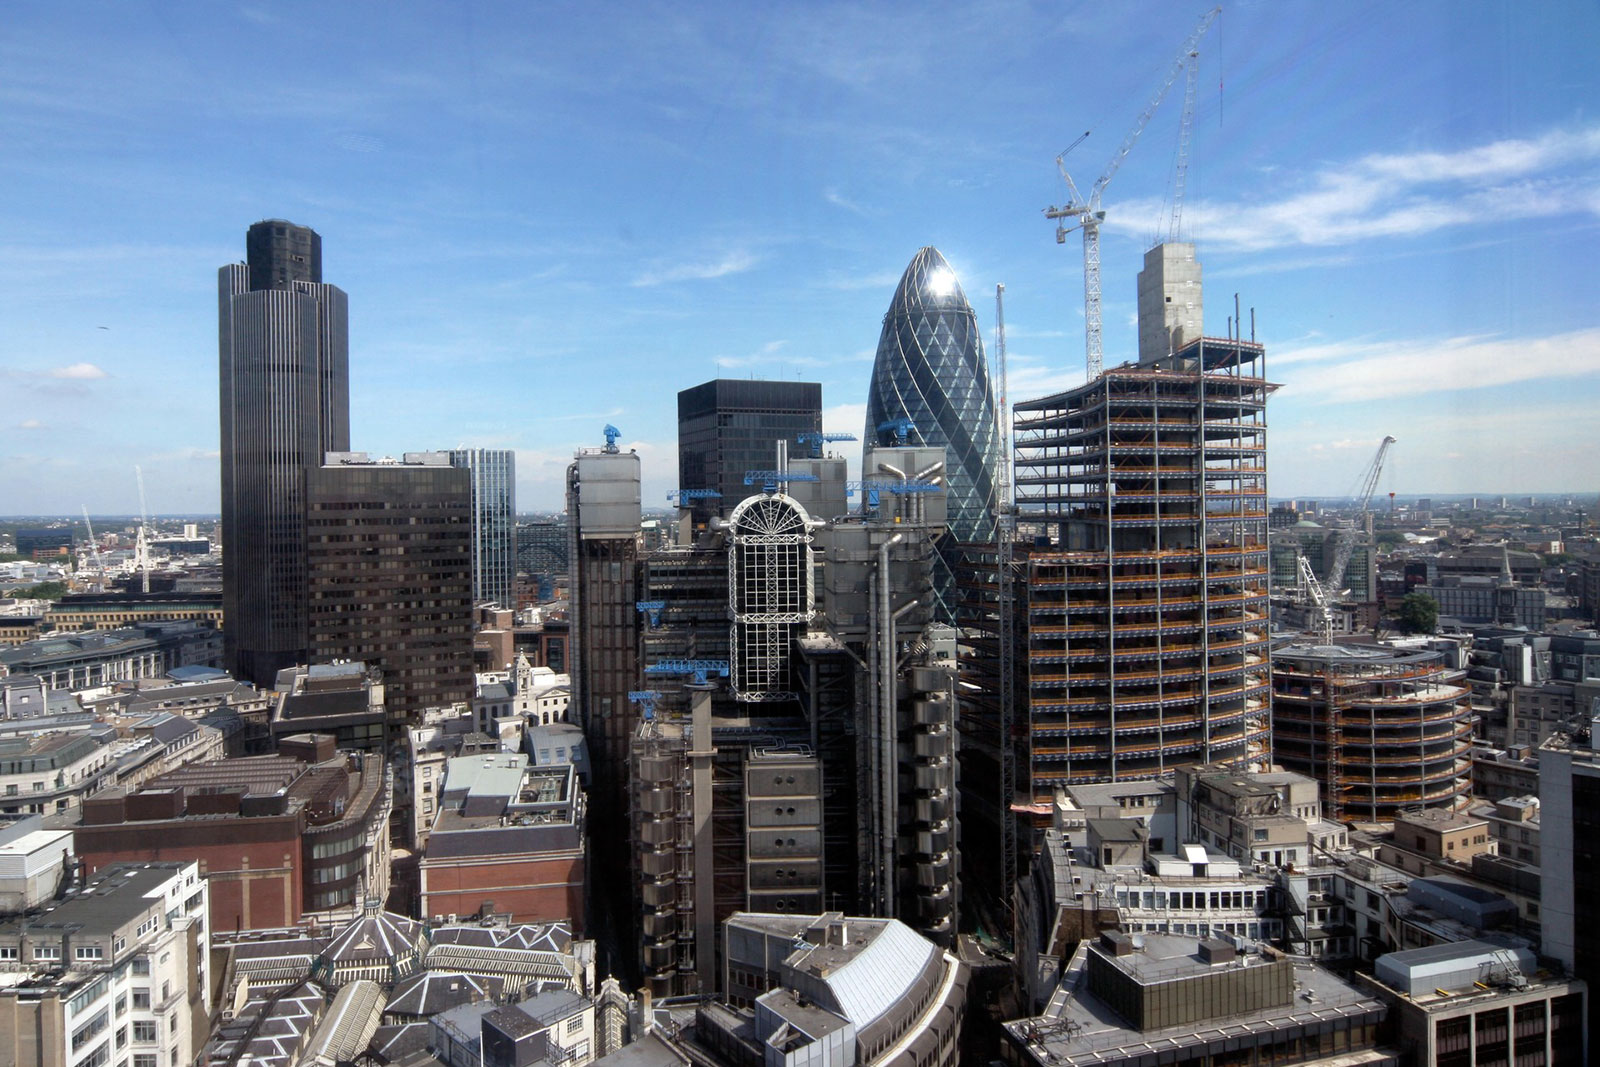 city-of-london-view-1225398